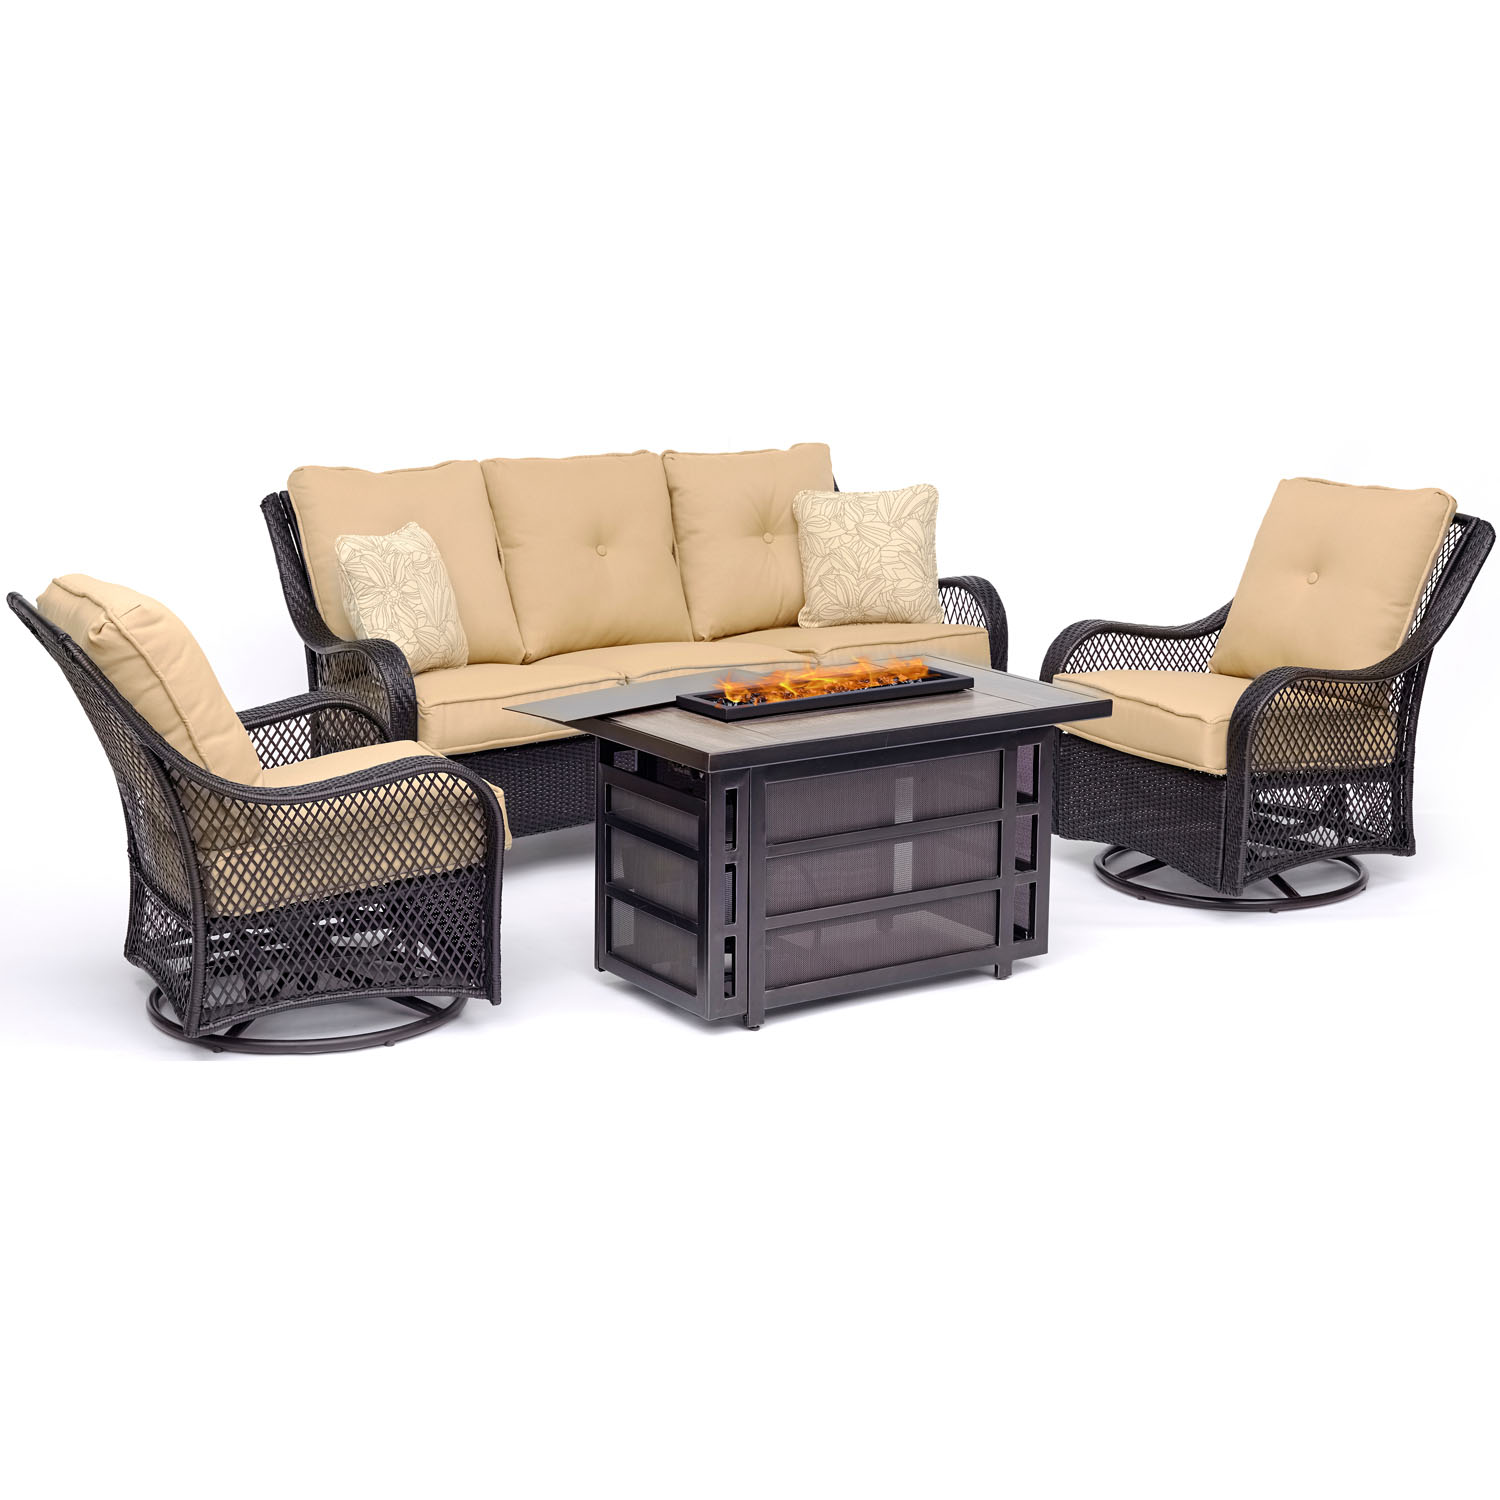 Hanover Orleans 4-Piece Woven Lounge Set with 30,000 BTU Firepit Table in Sahara Sand by Hanover